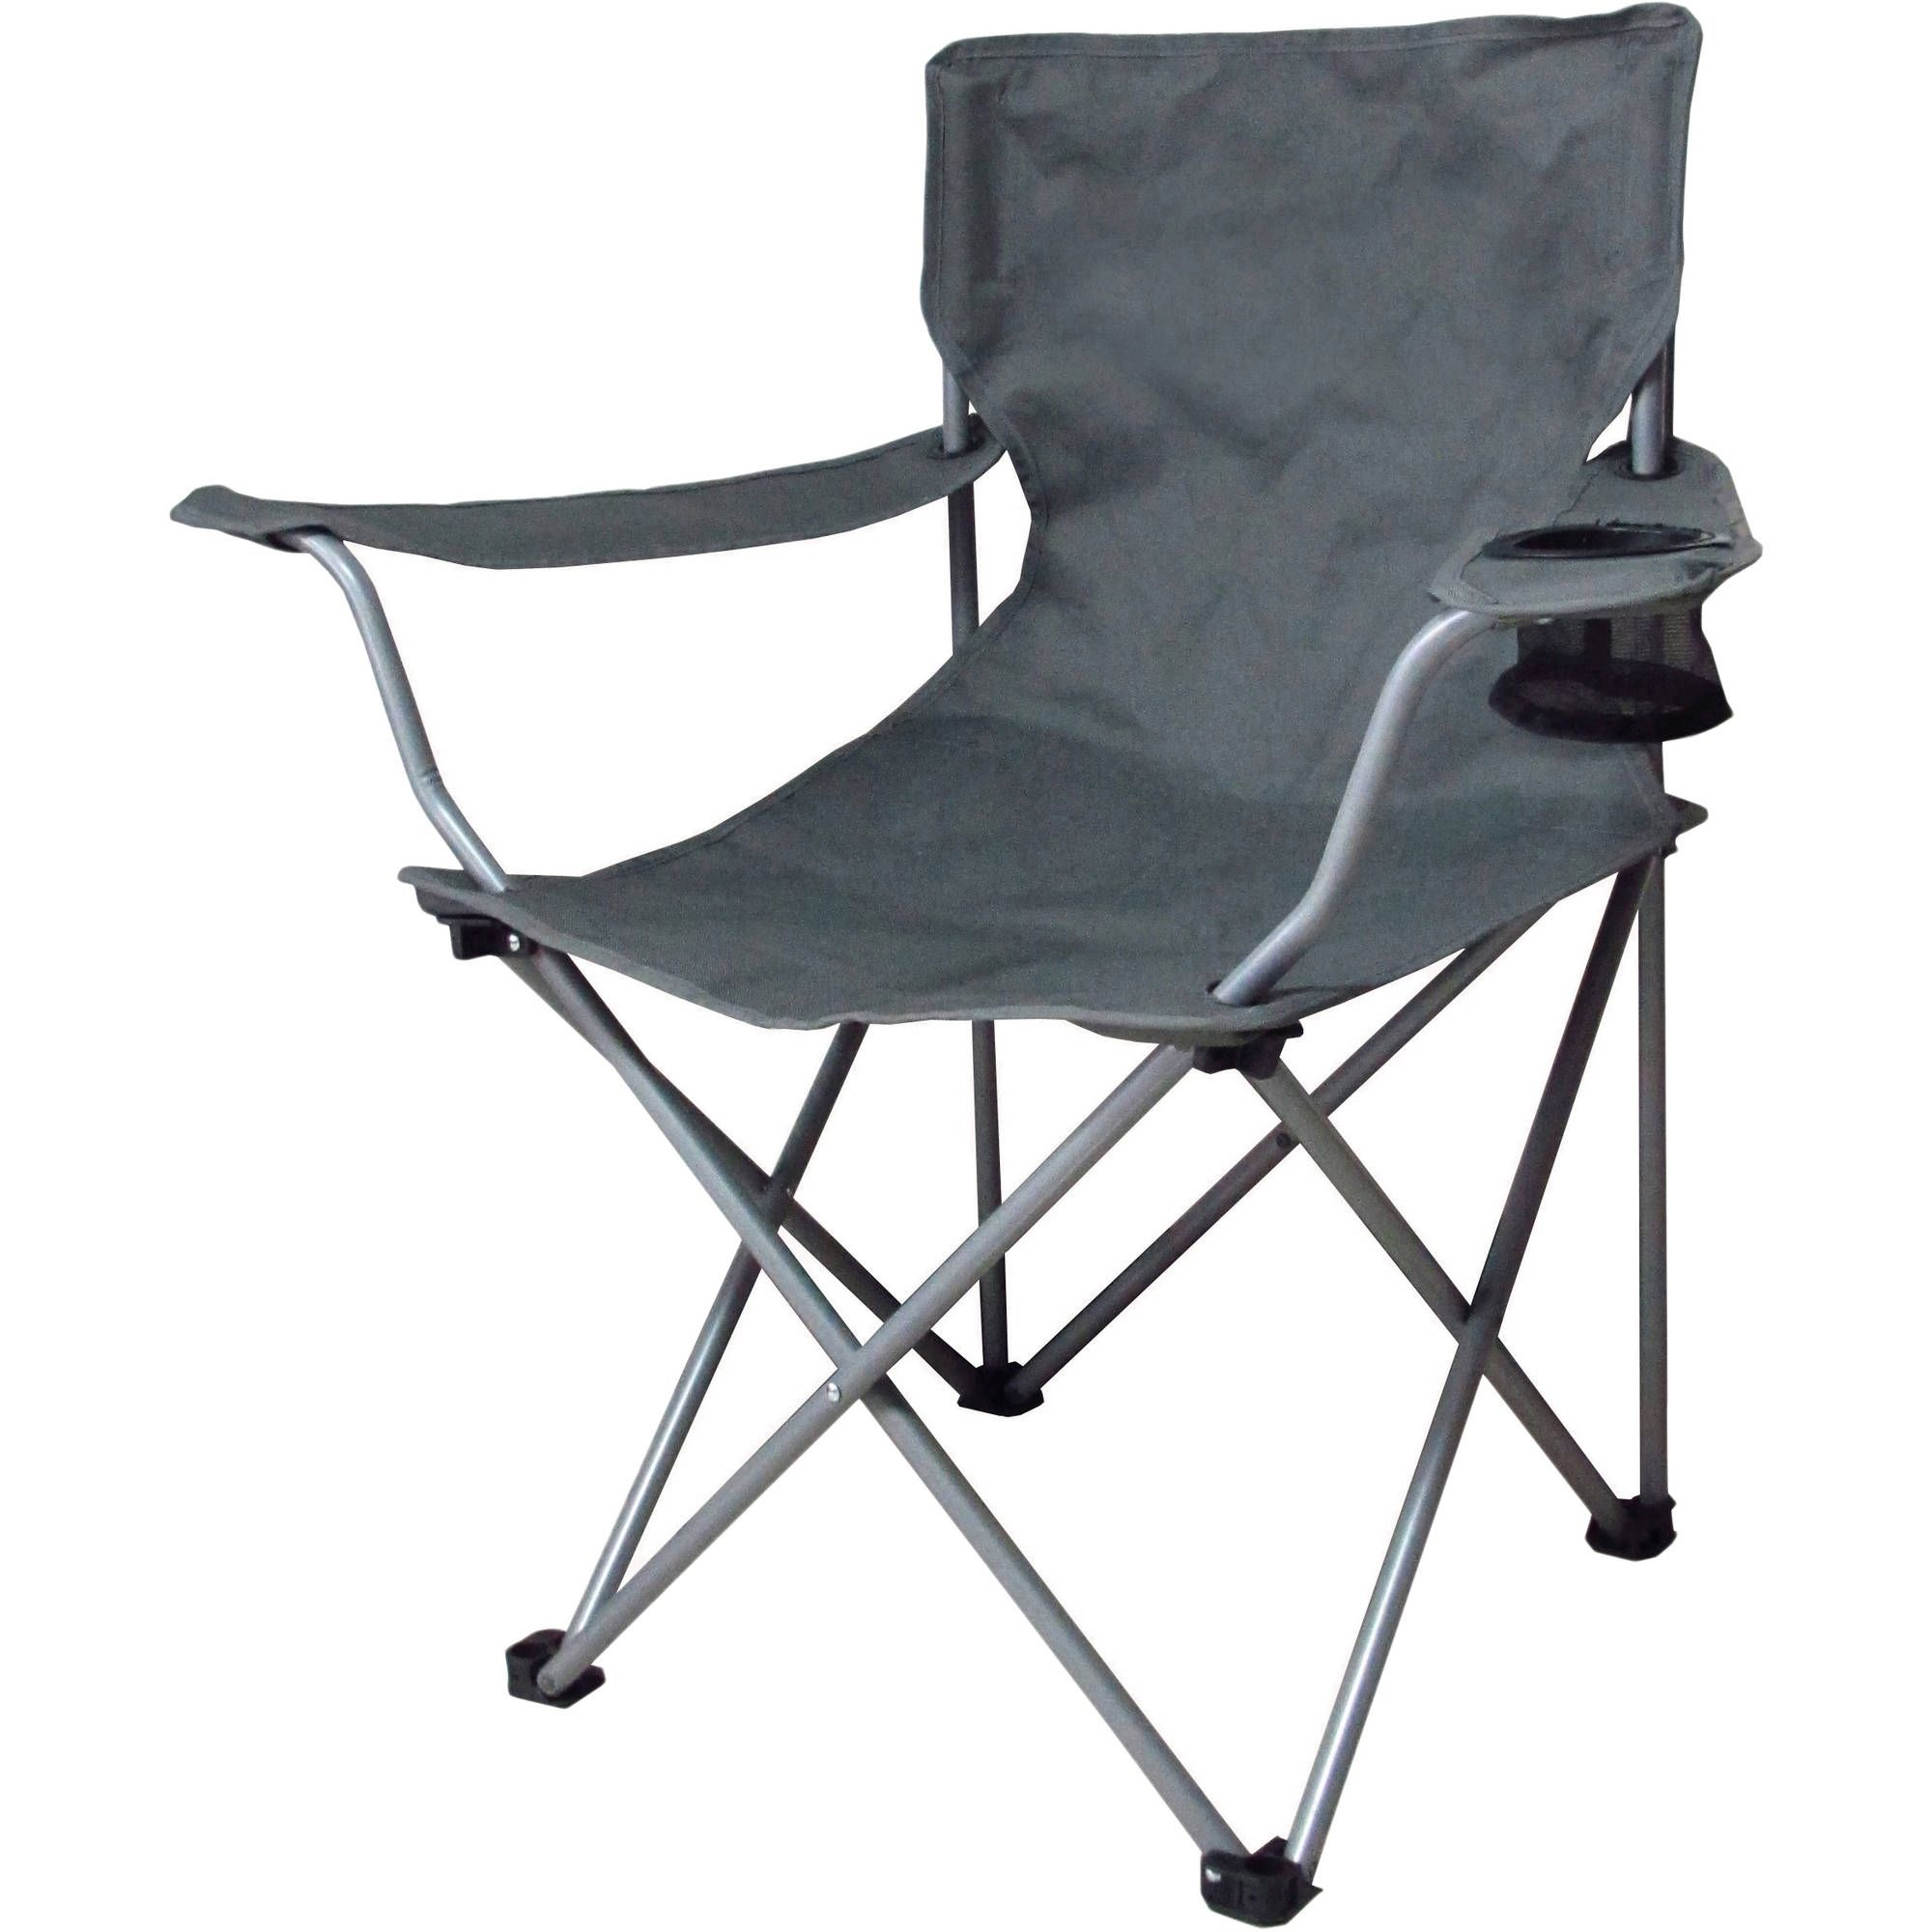 Small Fold Up Camping Chair